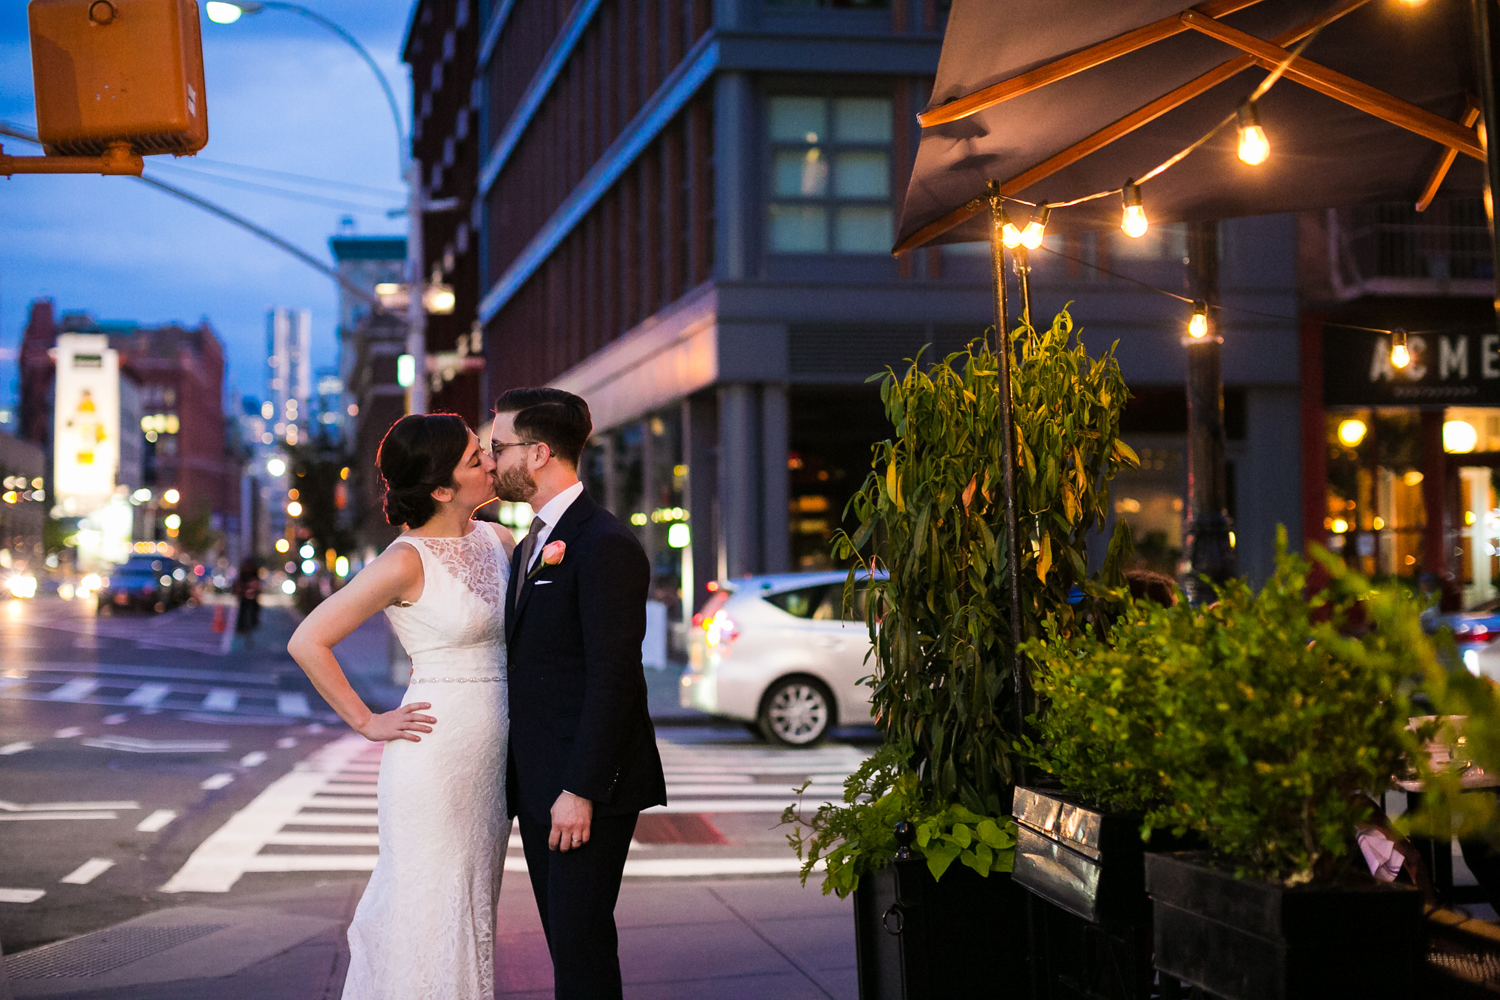 Bride and groom kiss on the streets of NYC